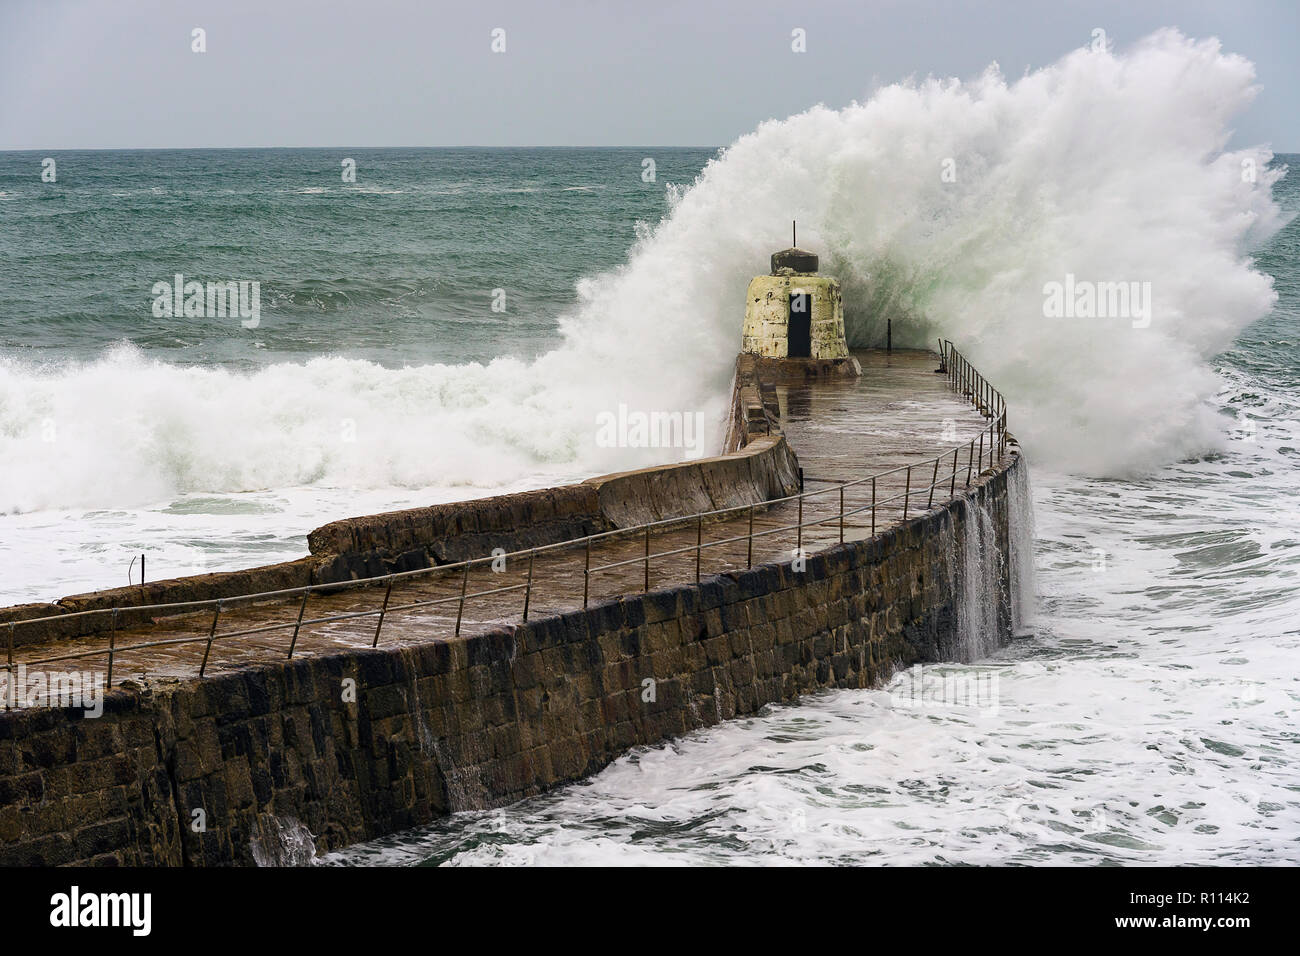 Portreath, Cornwall, UK. 04/11/2018. Gale force winds bring gigantic surf swells to Cornish harbour town of Portreath. - Stock Image